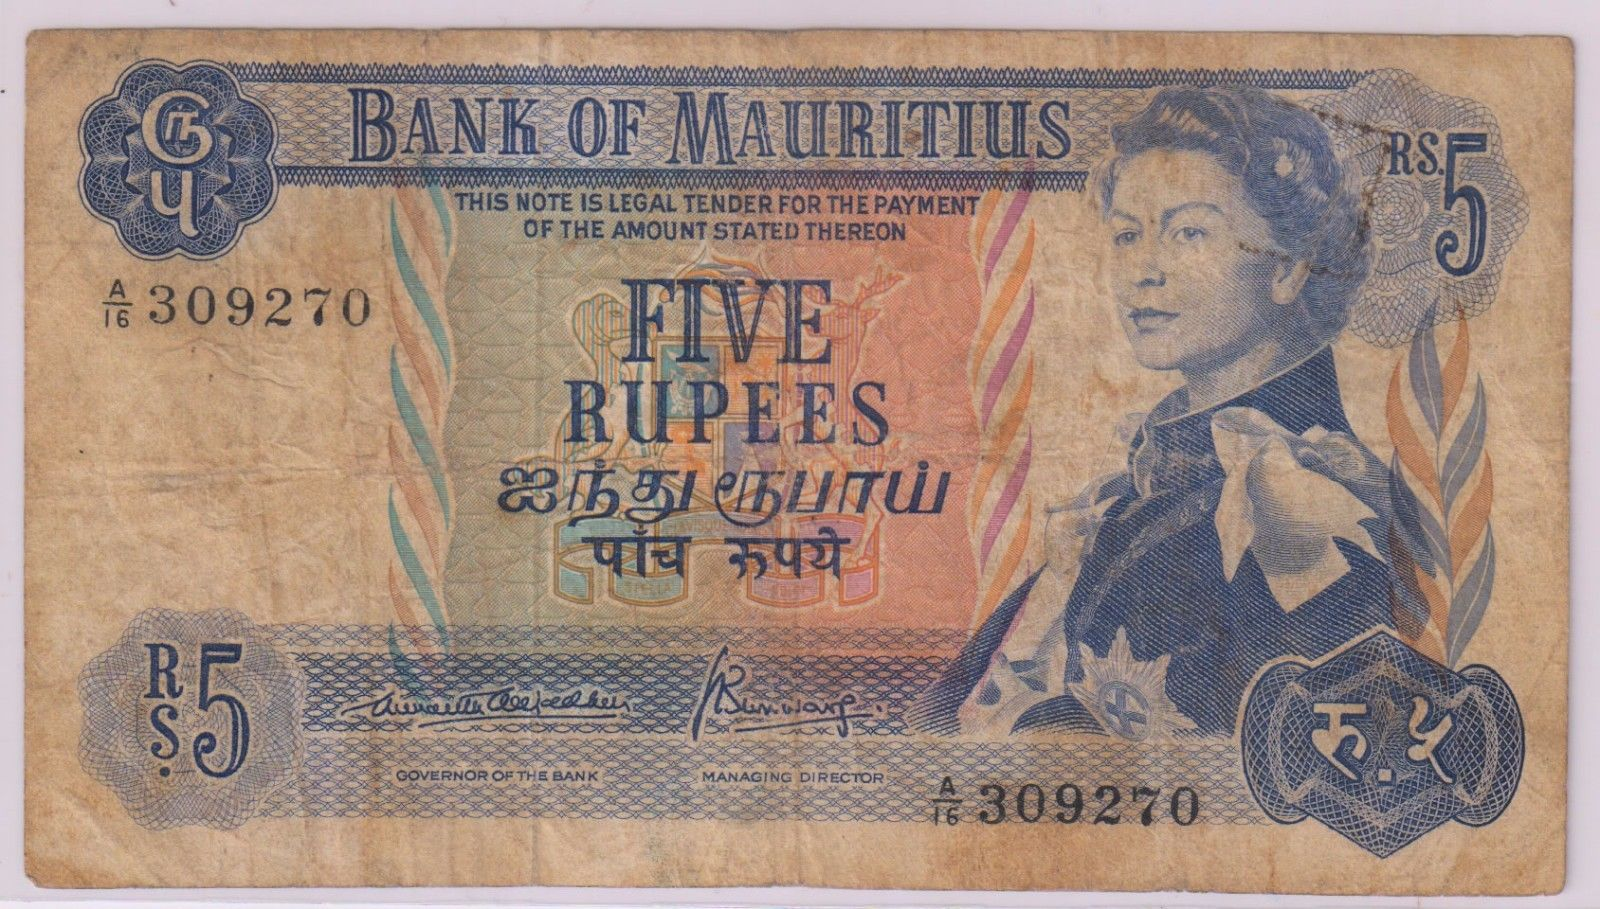 British Mauritius - 5 rupees 1968 used currency note